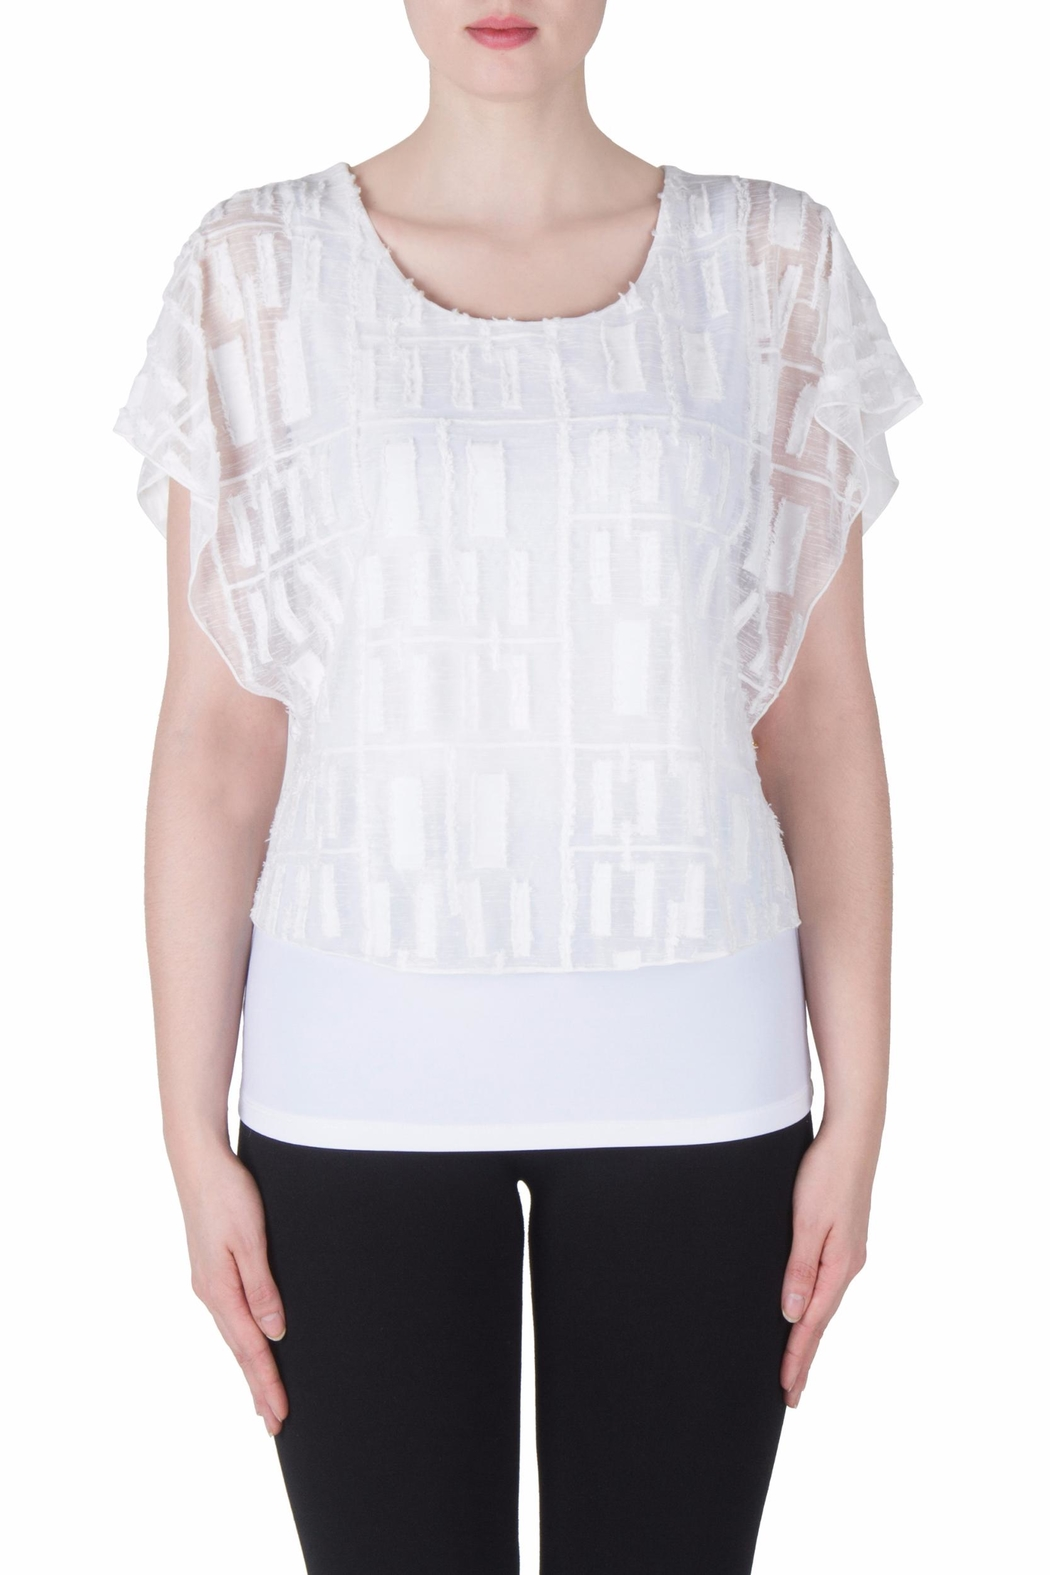 Joseph Ribkoff Fitted Layer Top - Main Image